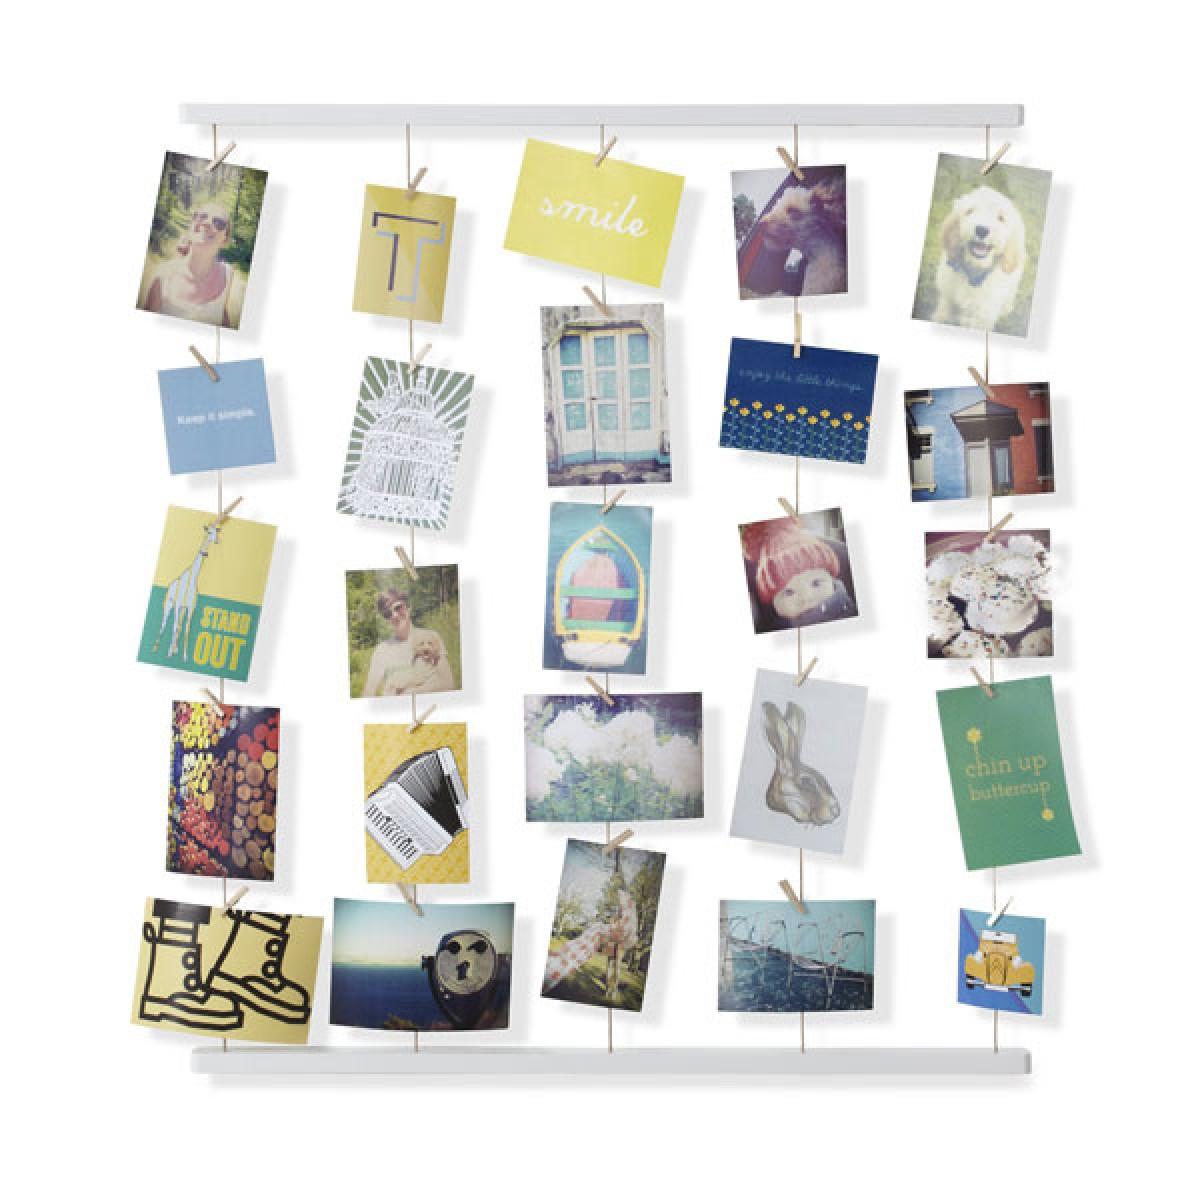 umbra products  photo frames  home accessories - umbra hangit photo display  designer hanging photo frame